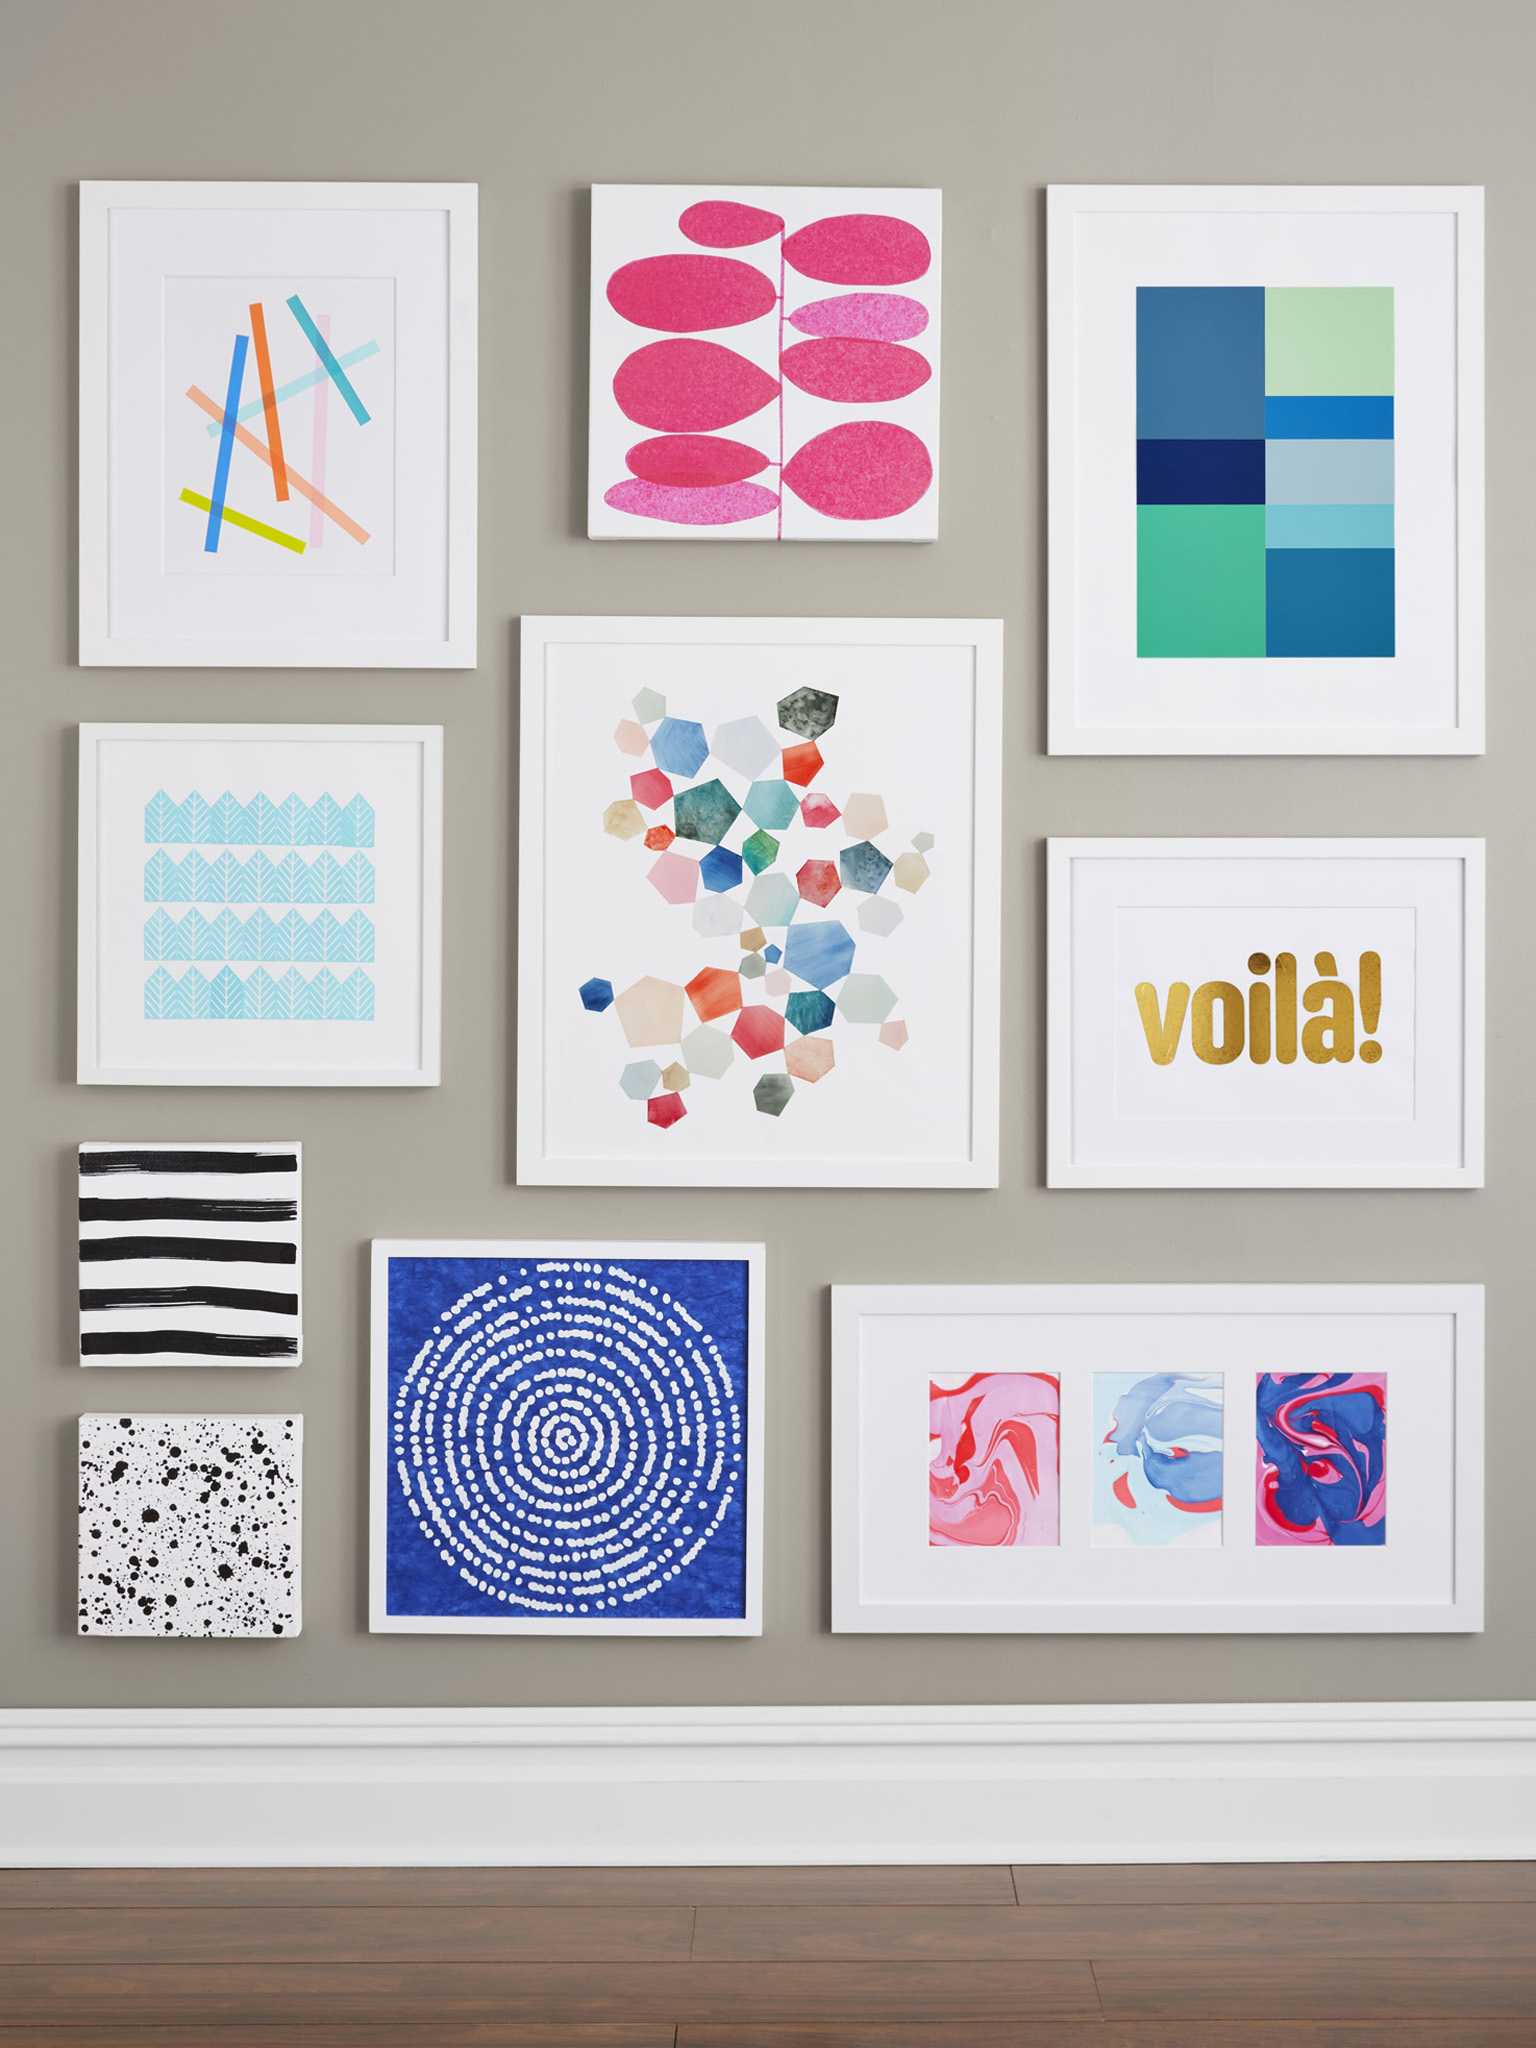 Diy wall art projects cool diy art projects with wood for Making wall decorations